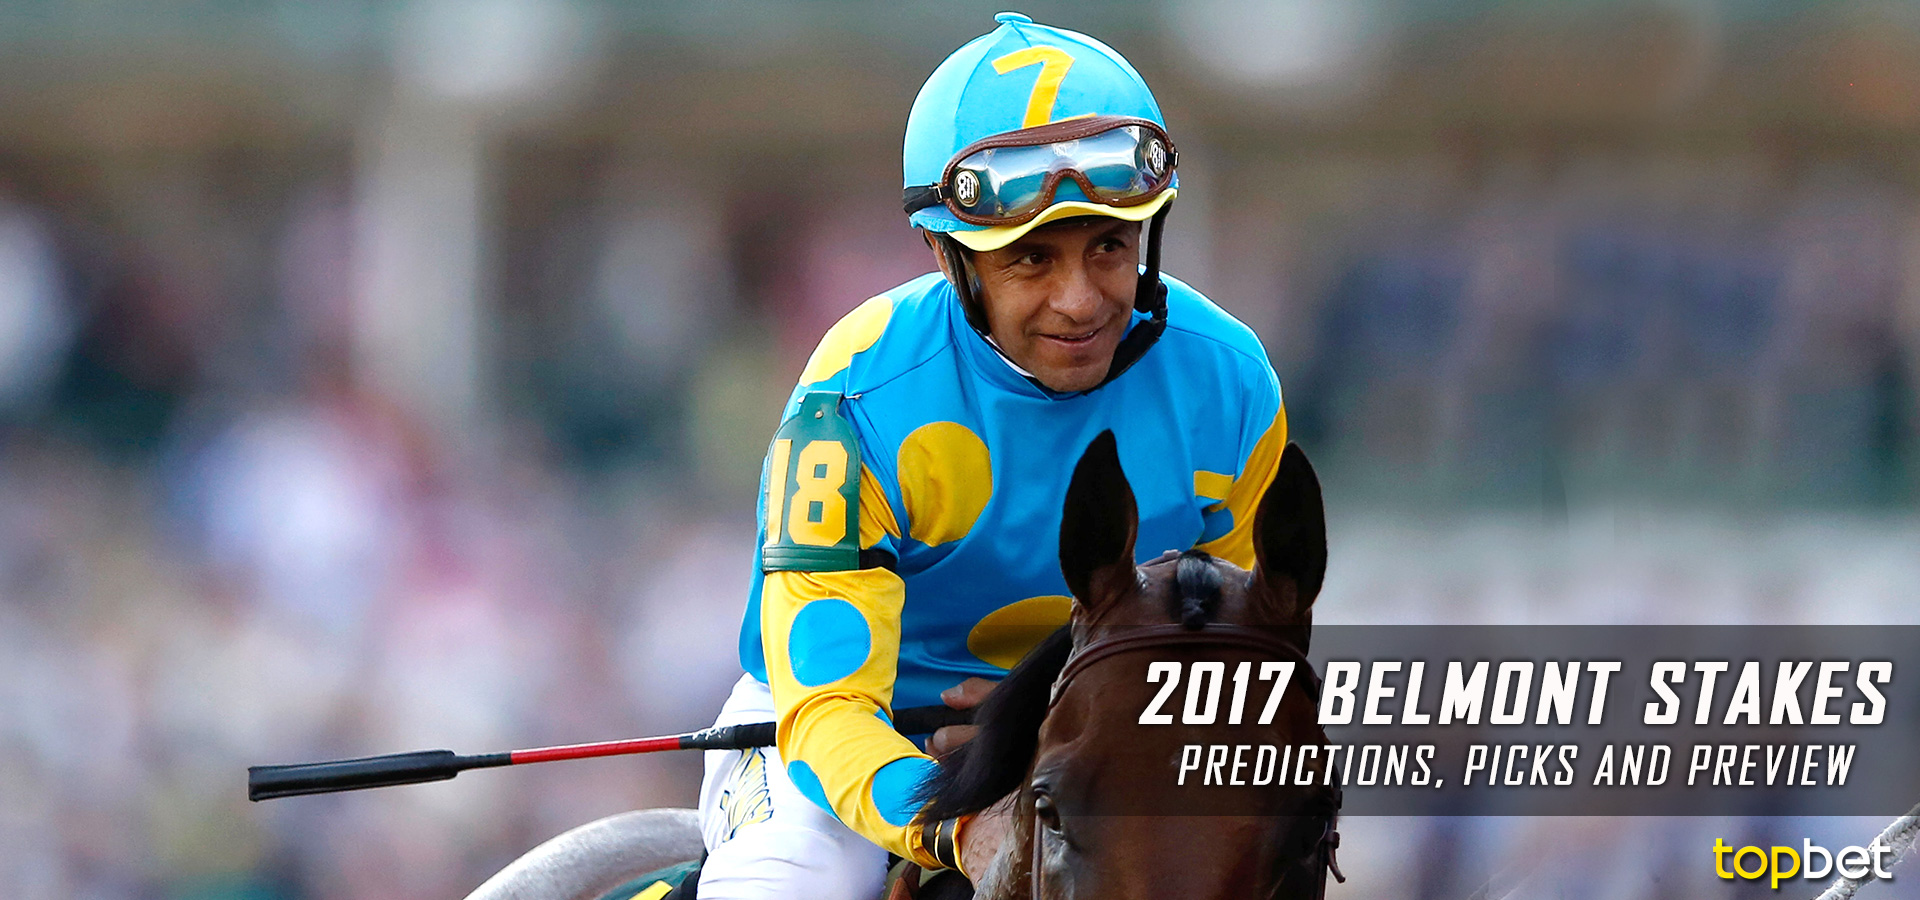 2017 Belmont Stakes Predictions Picks Odds And Preview